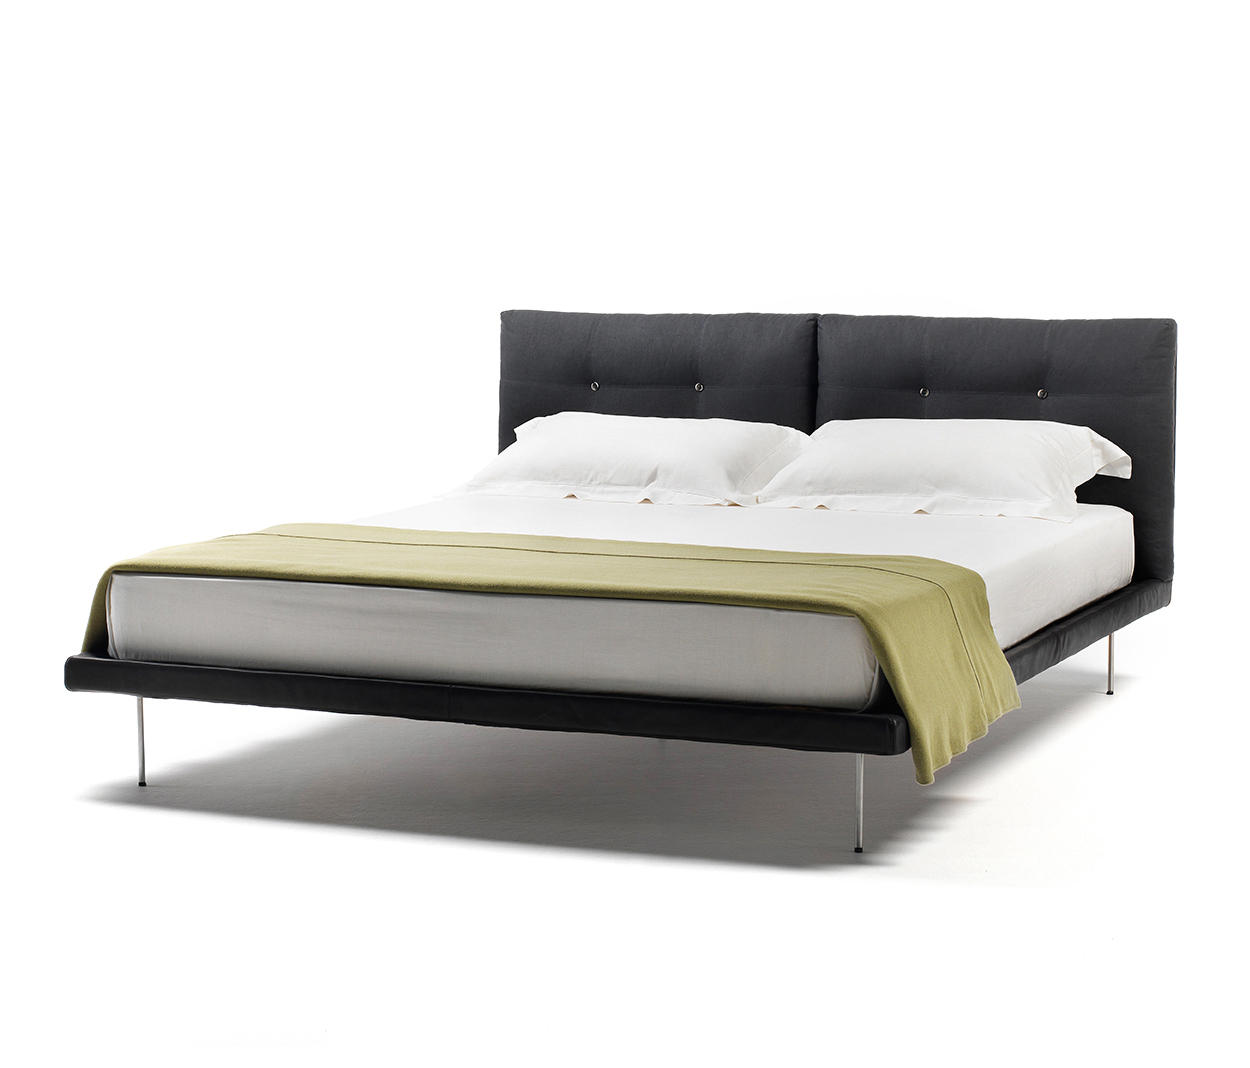 Living Divani Bed Rod Bed - Beds From Living Divani | Architonic